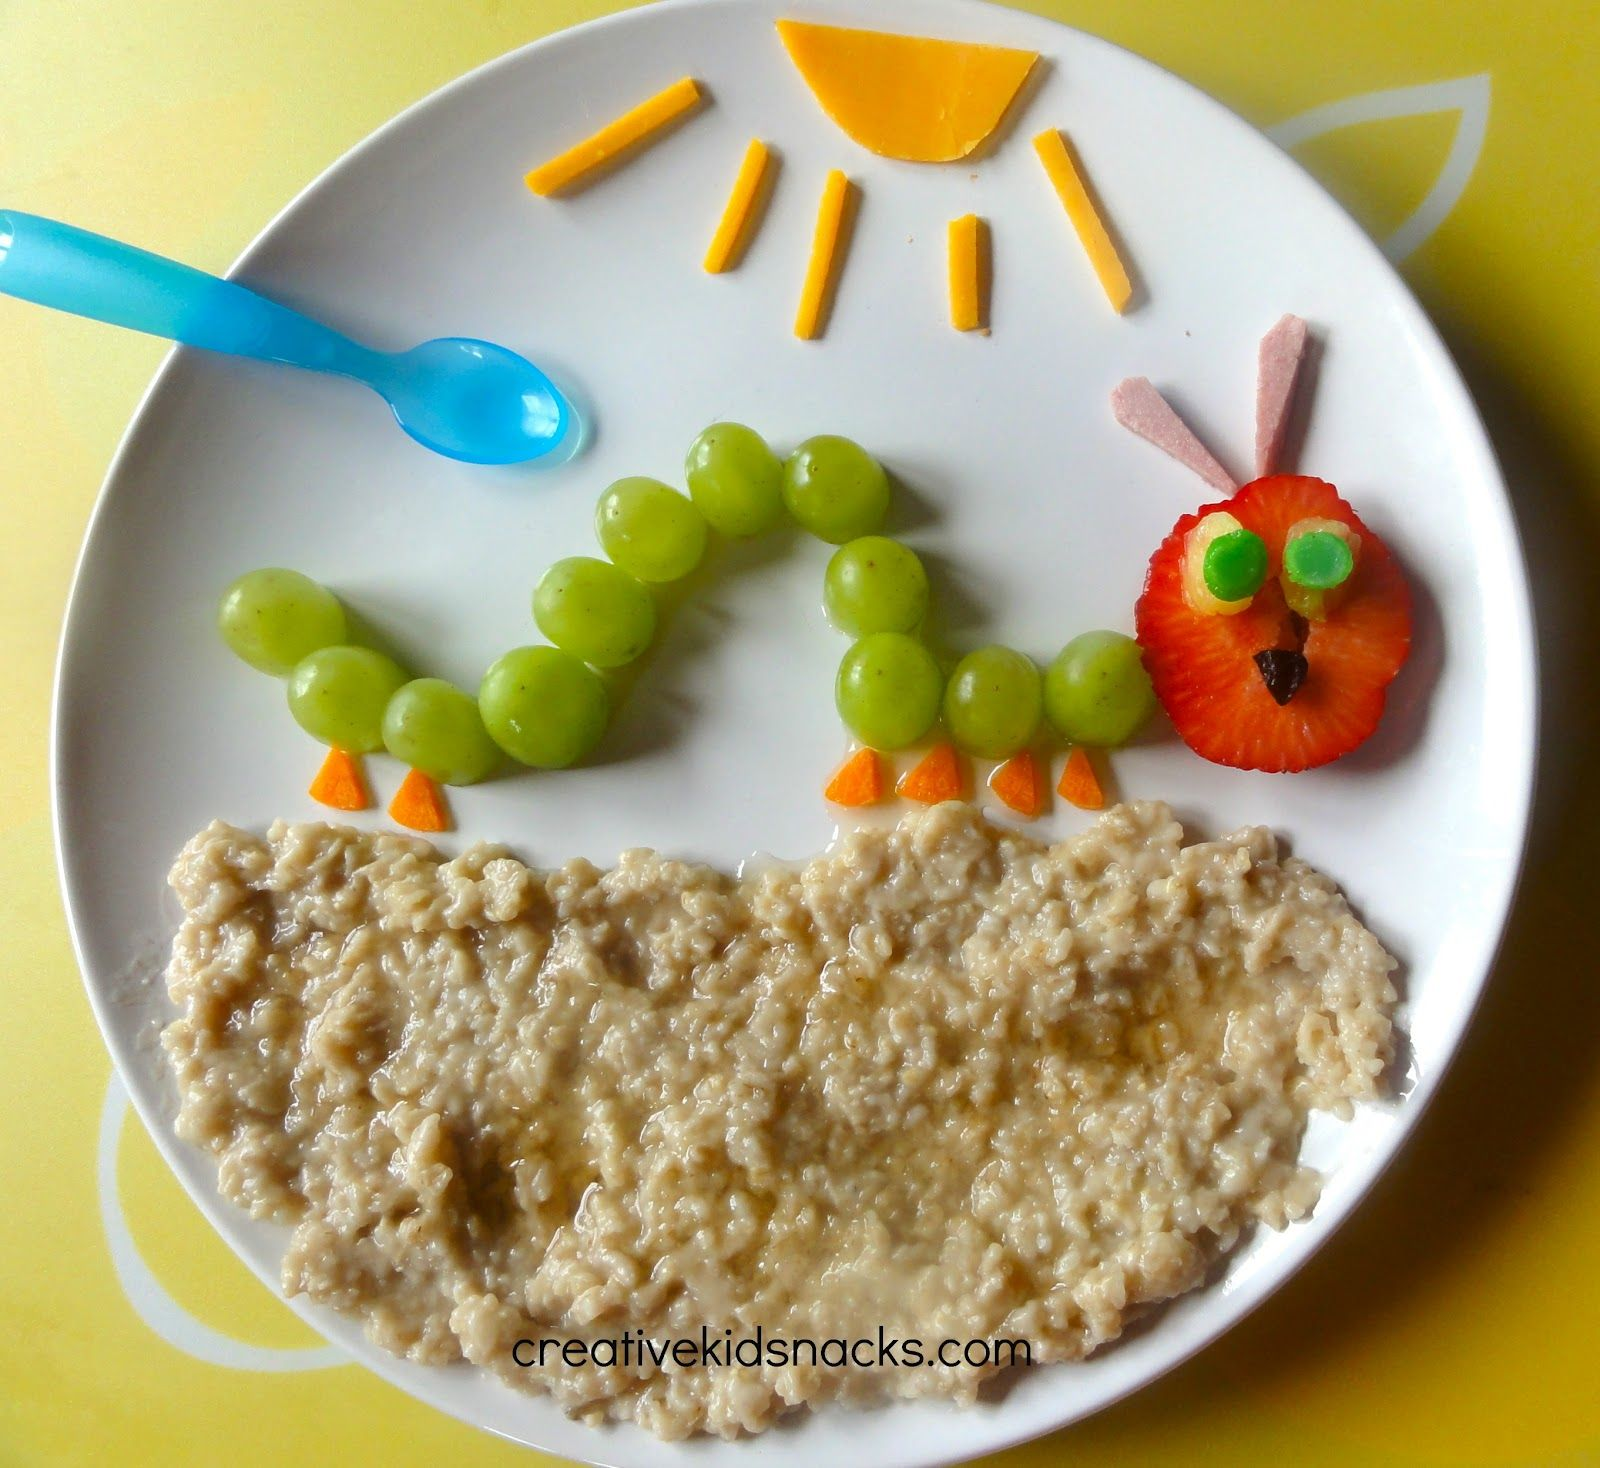 Creative Kid Snacks: The Very Hungry Caterpillar